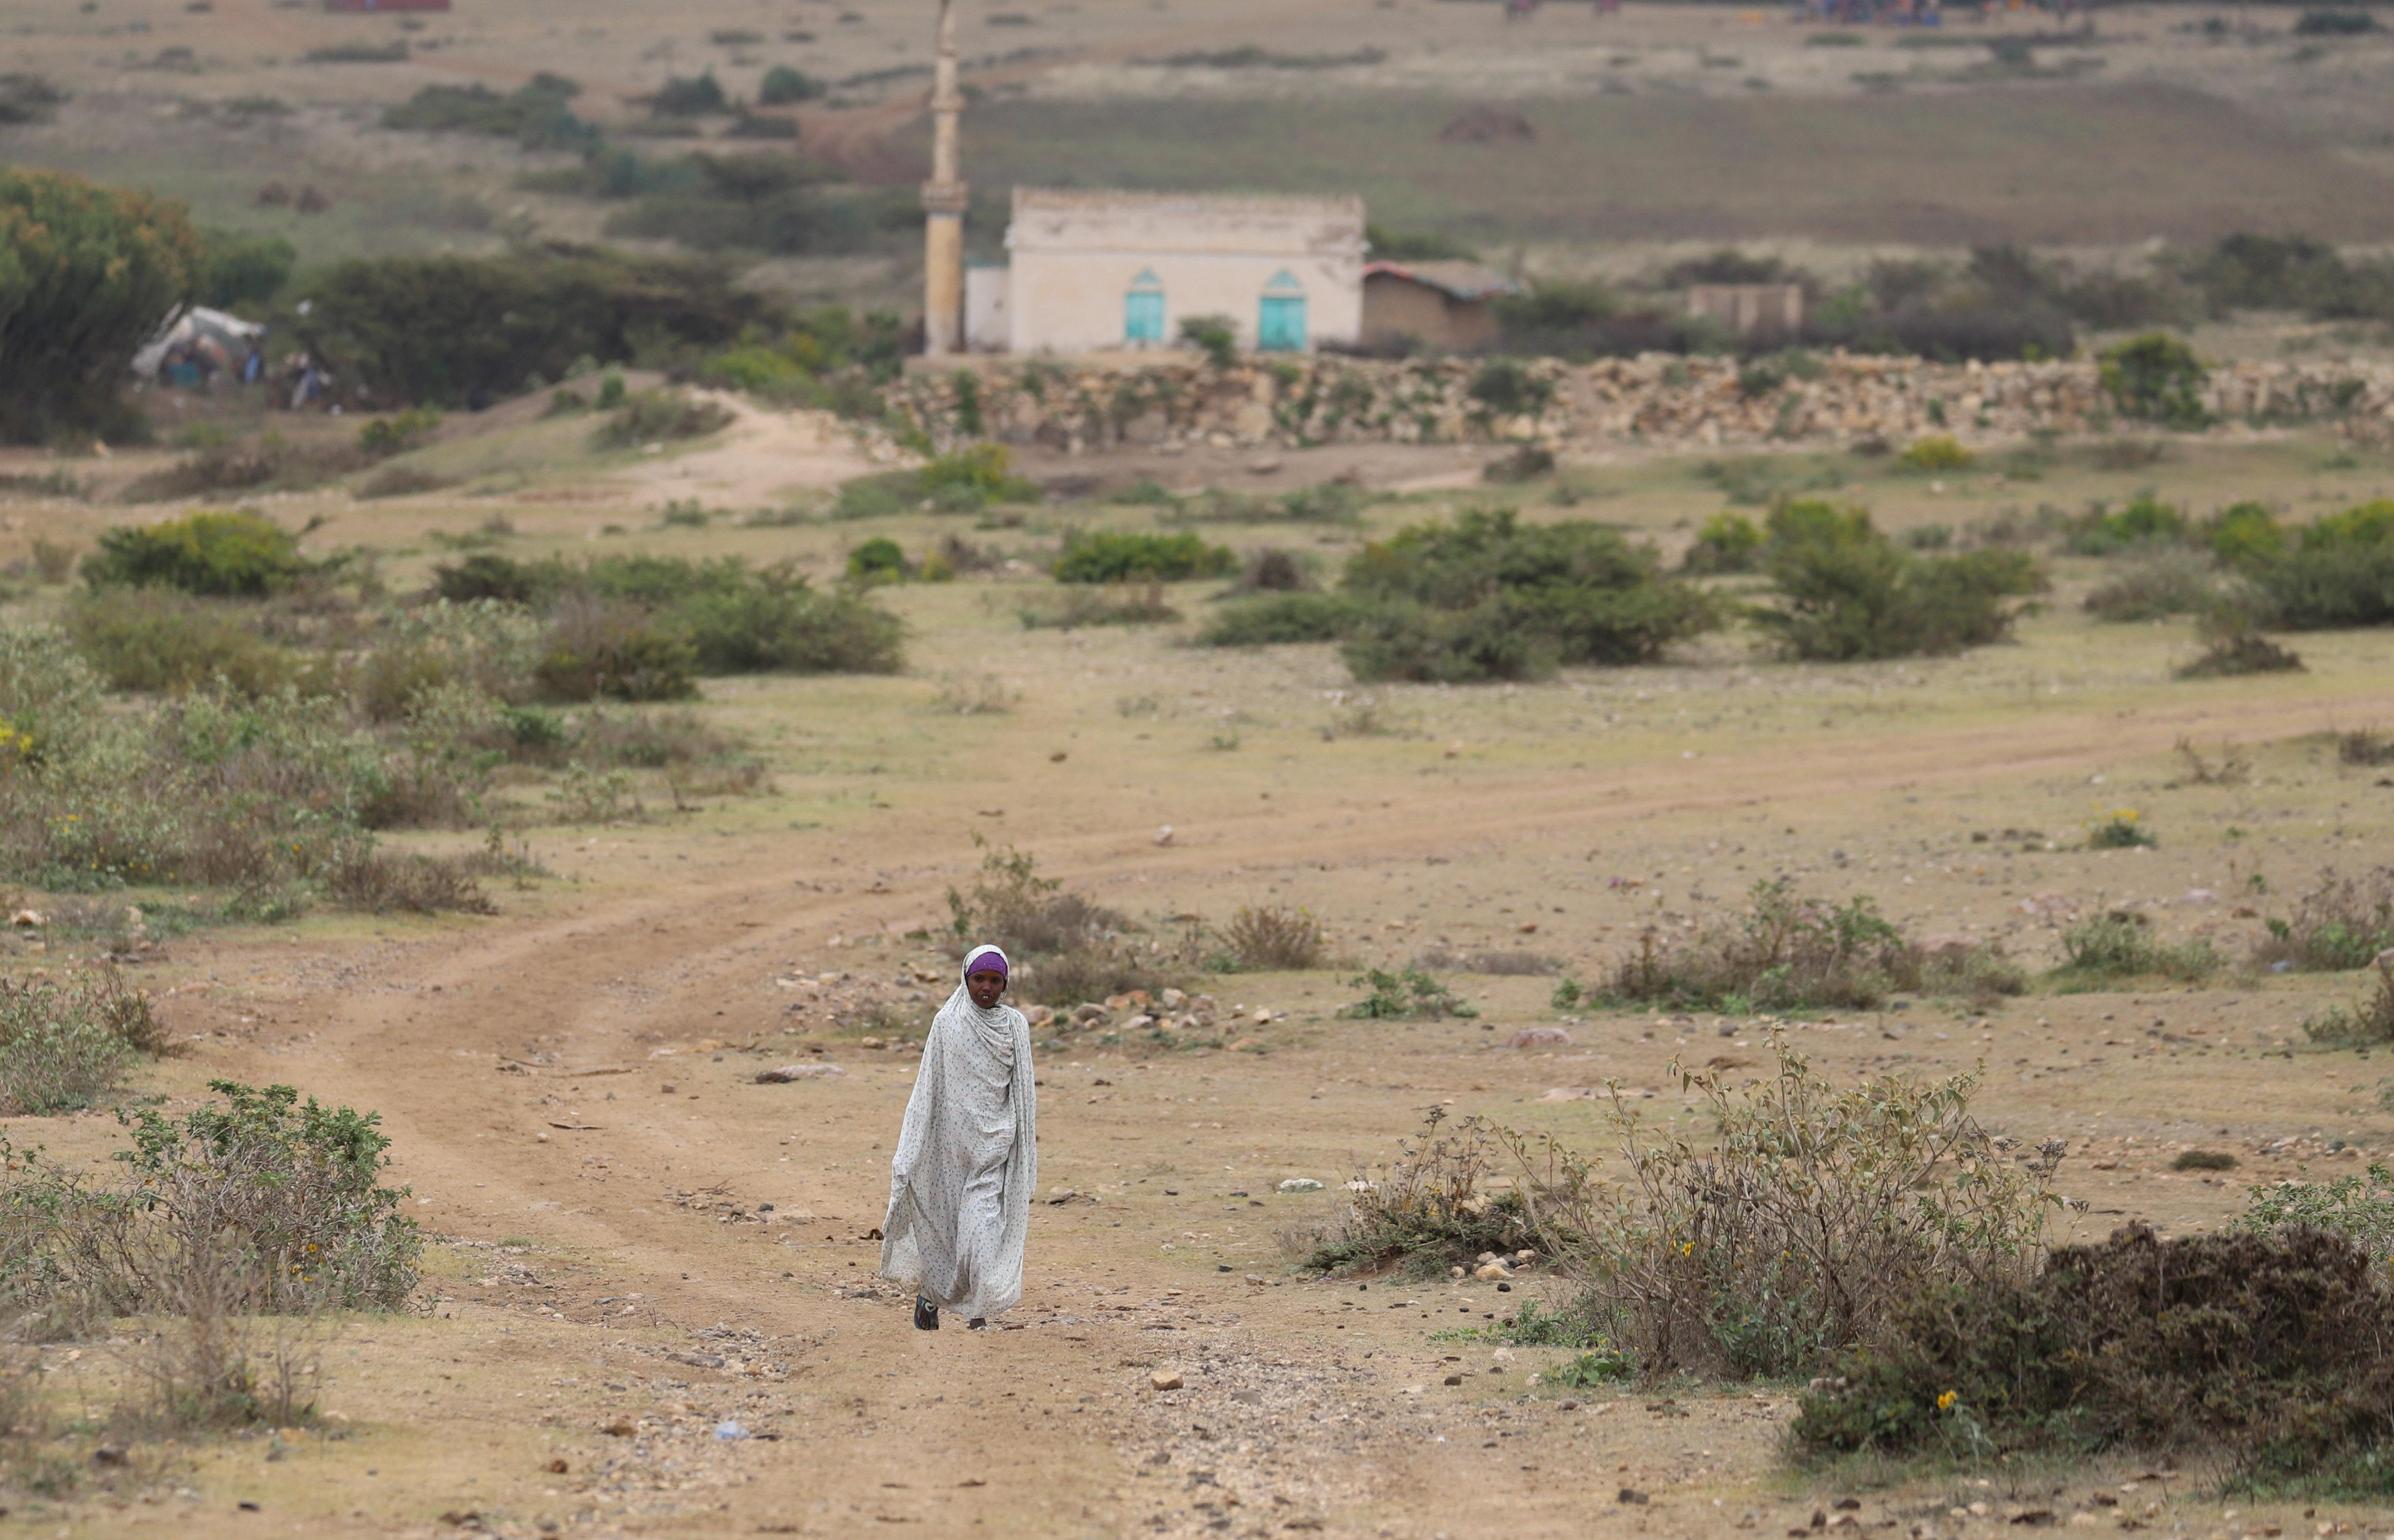 Ethiopia's Somali region says town attacked, amid new local flare ups